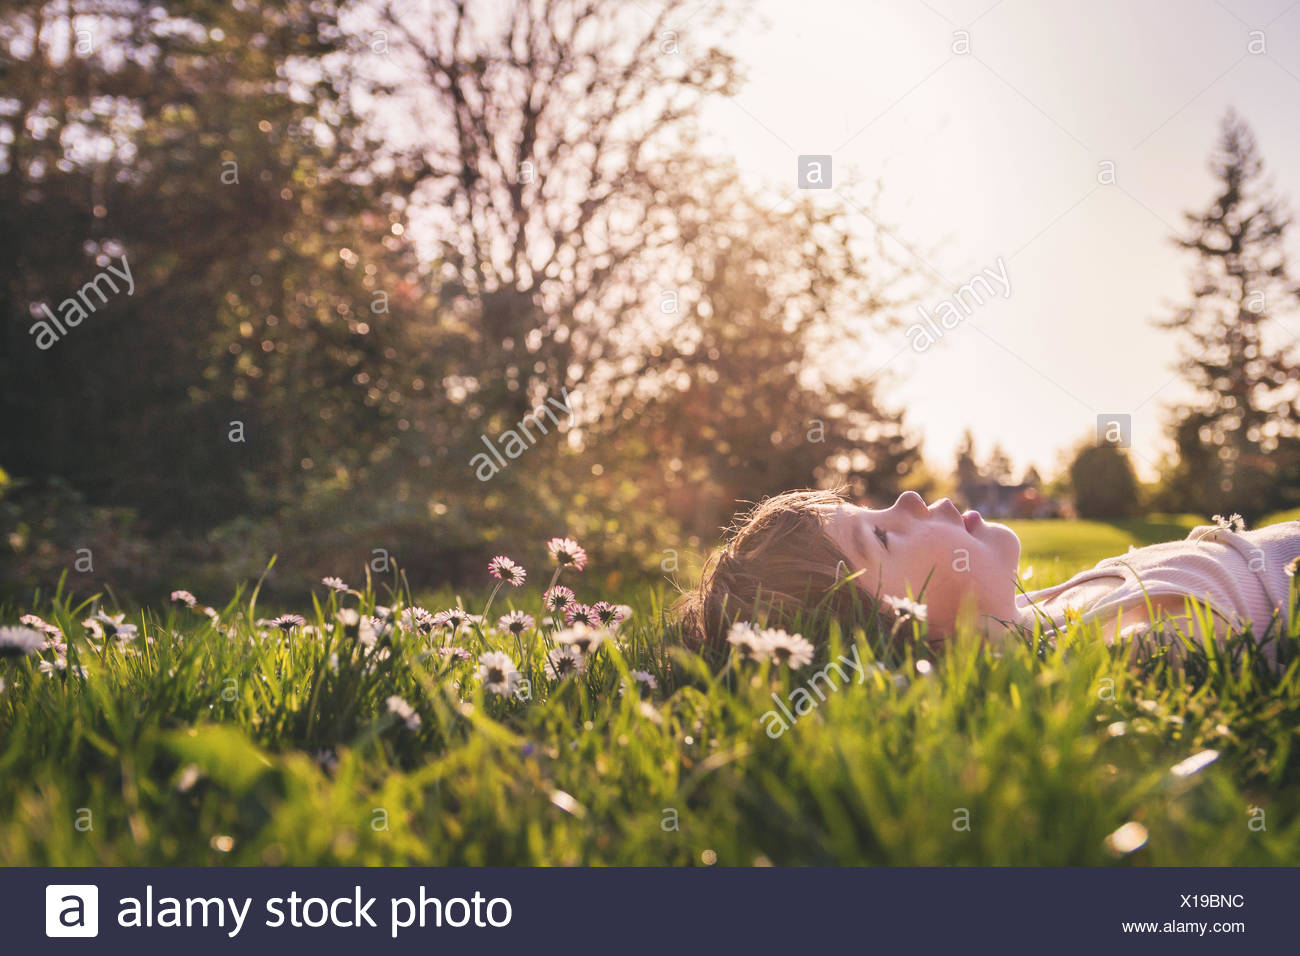 Boy laying in a field of flowers looking up at the sky - Stock Image